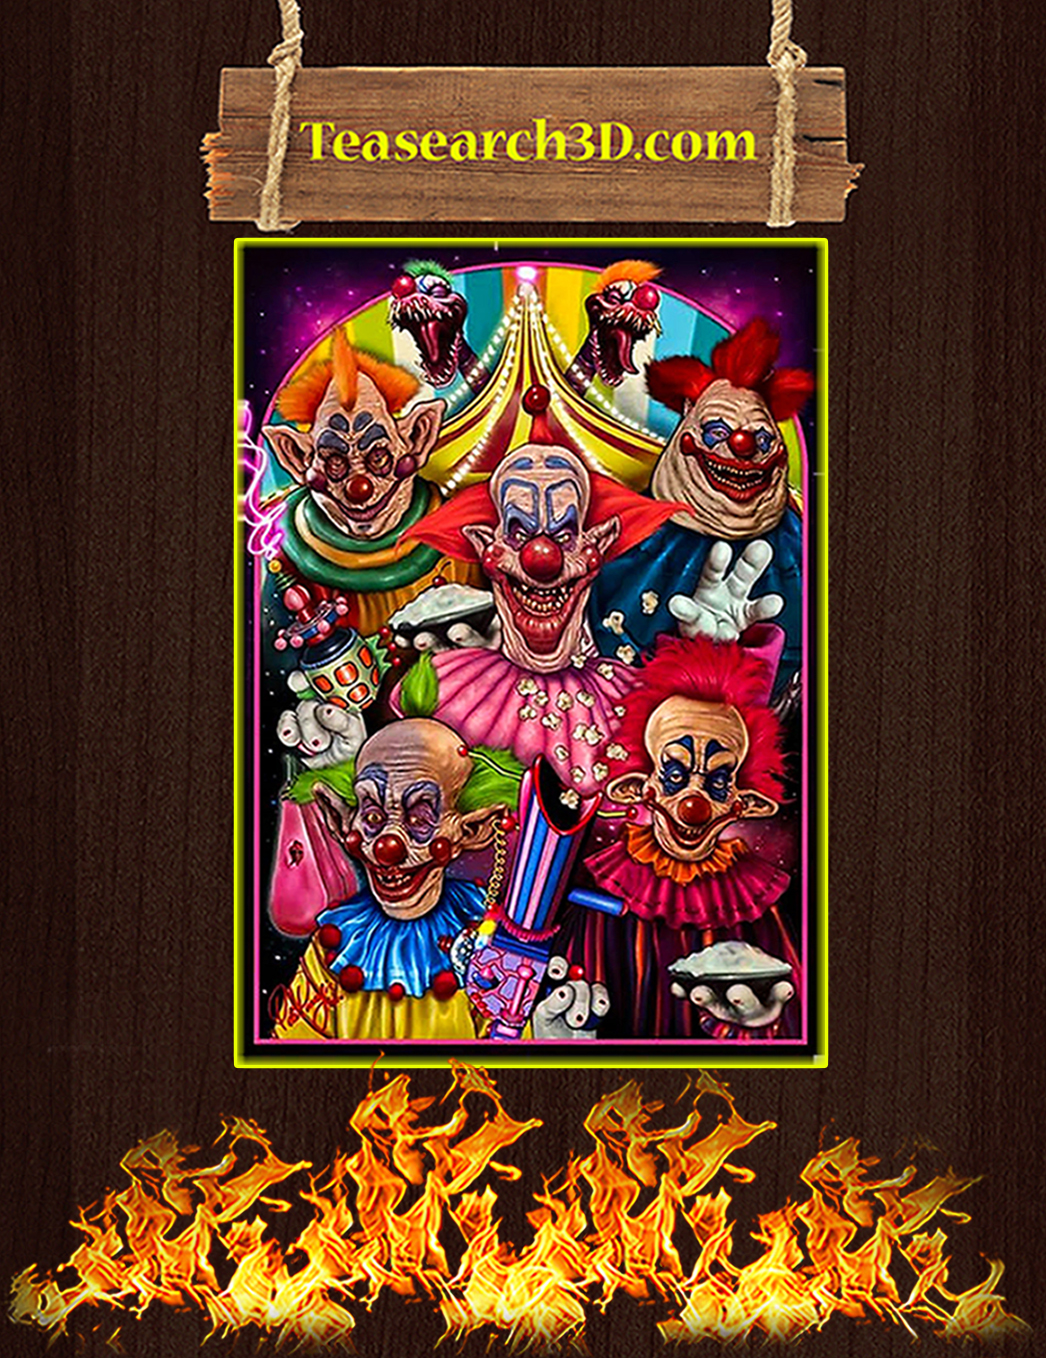 Killer klowns from outer space poster A1